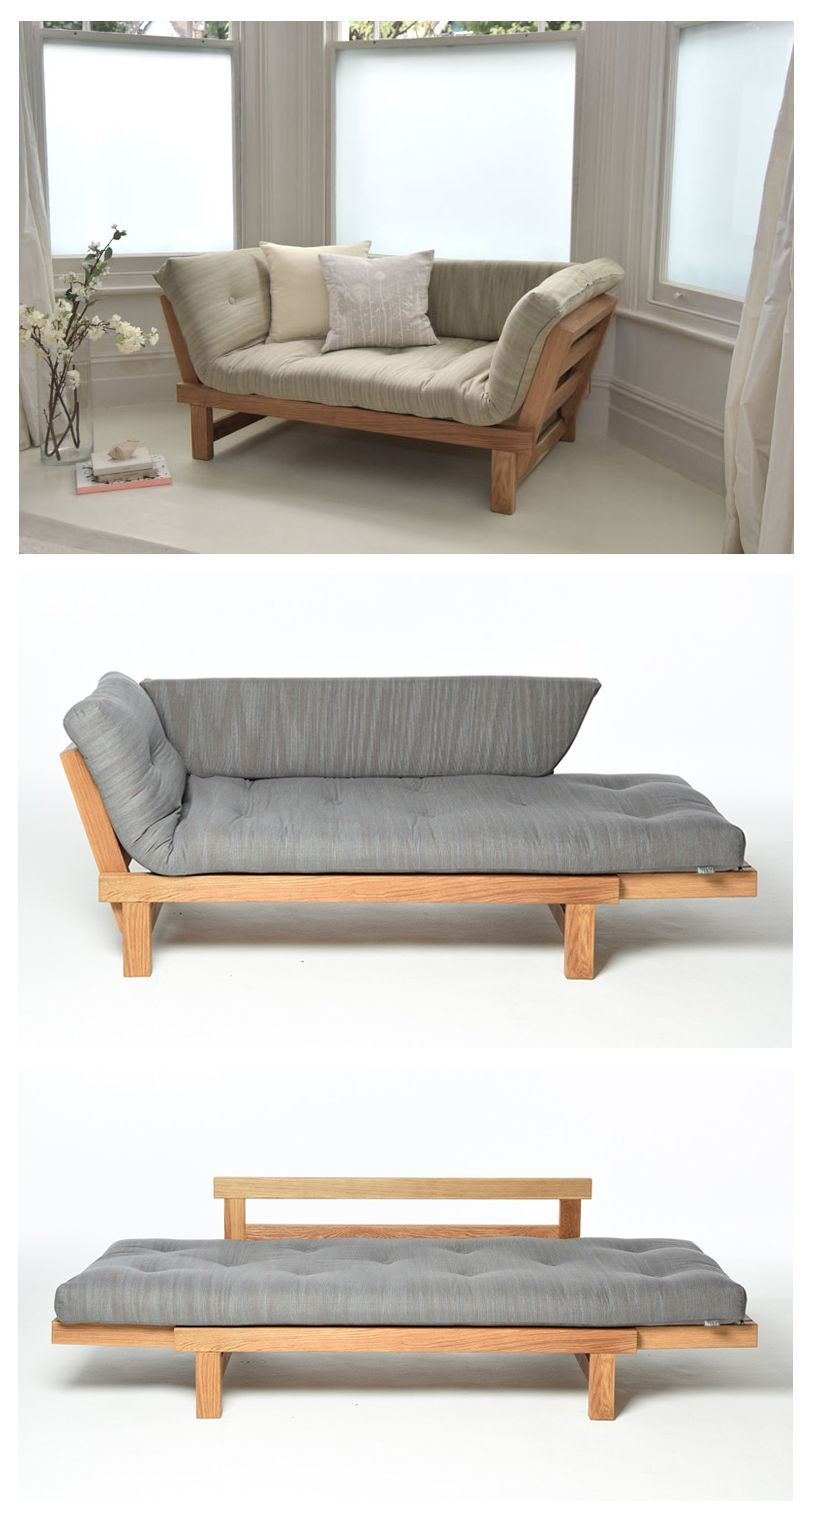 Beau Move Into Your Comfort Zone With Our Space Saving Oak Switch Sofa Bed Which  Offers Three Relaxation Positions For The Price Of One U2013 Sitting, Slouching  And ...